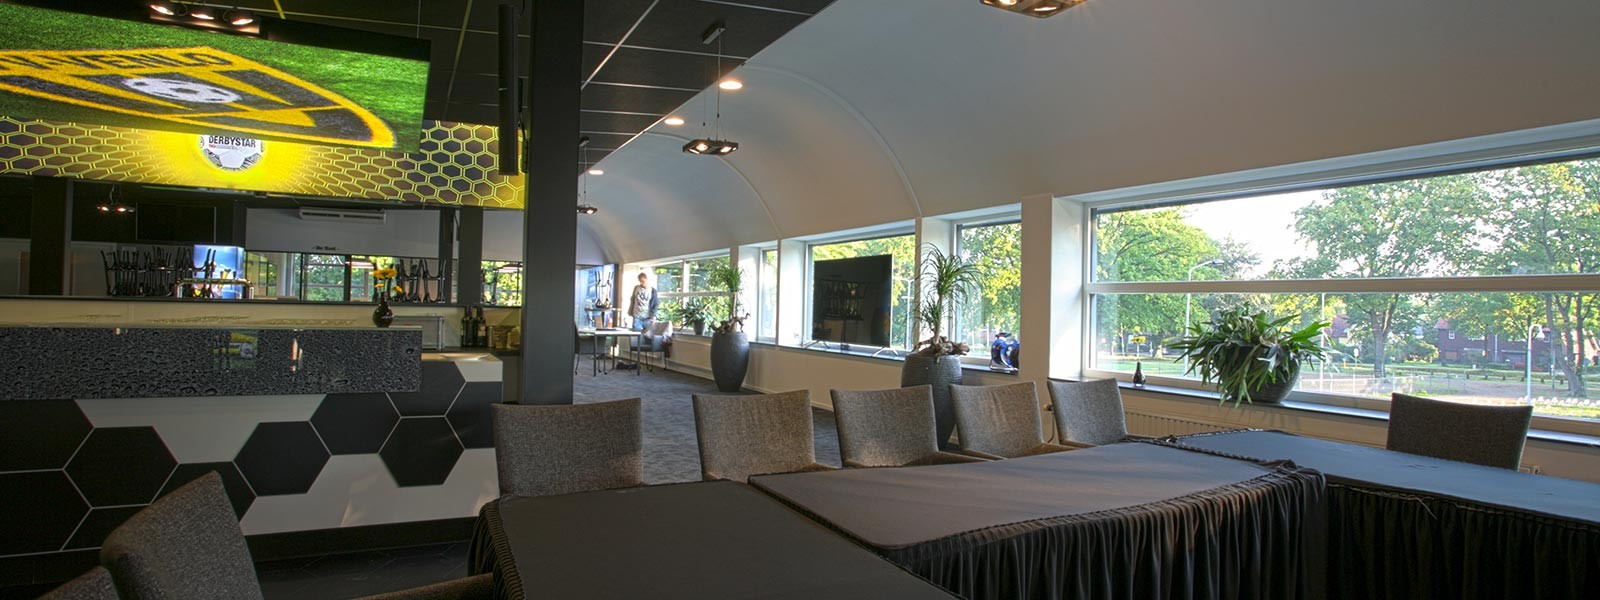 VVV-Venlo Business lounge, Venlo